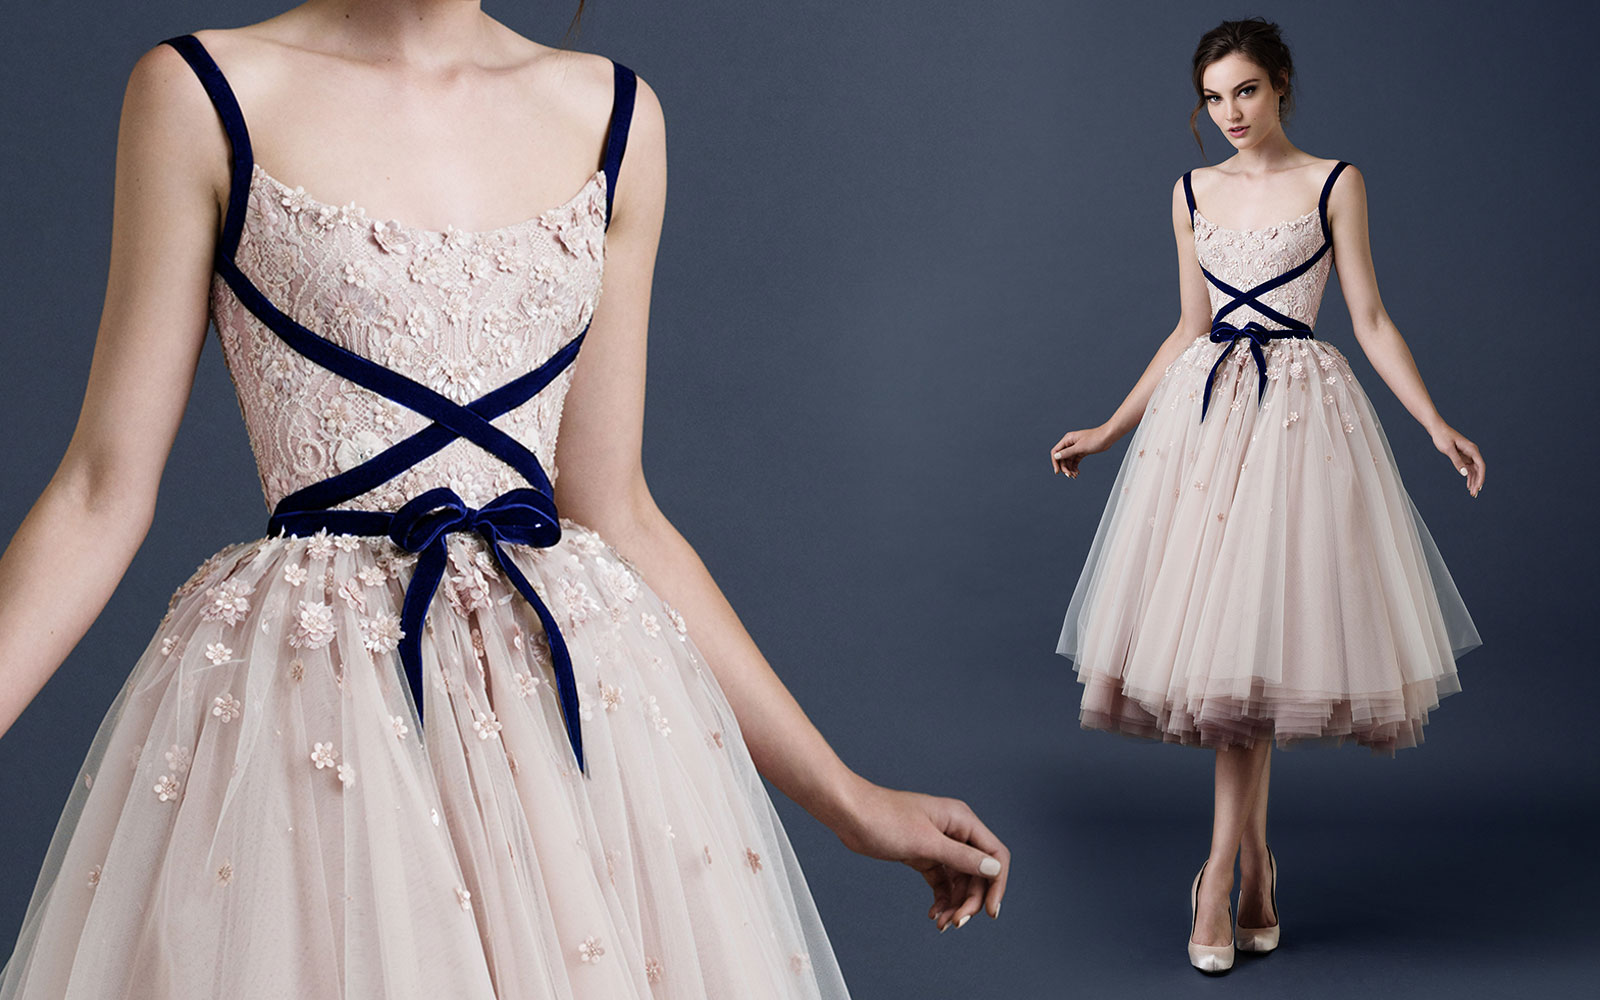 Paolo Sebastian - Shop for Paolo Sebastian on Wheretoget